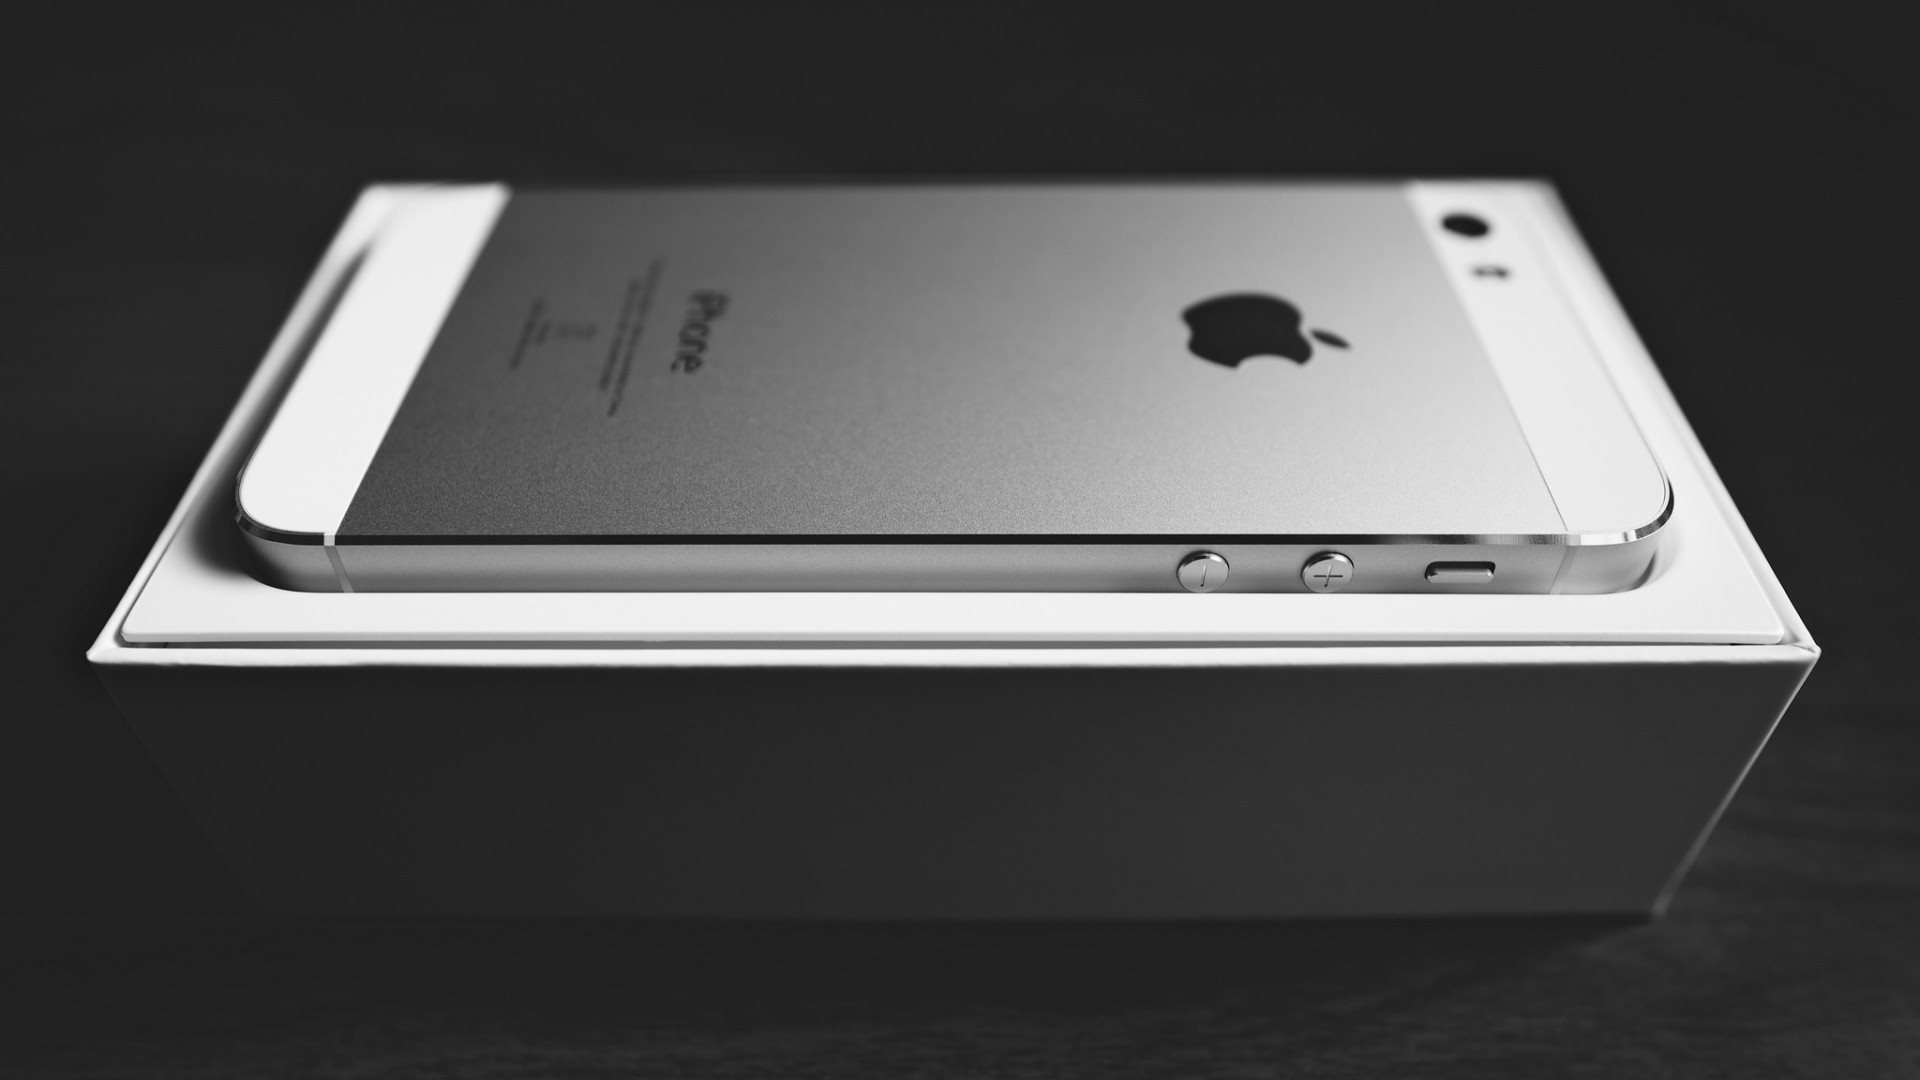 iphone 5s in box wallpaper hd wallpapers